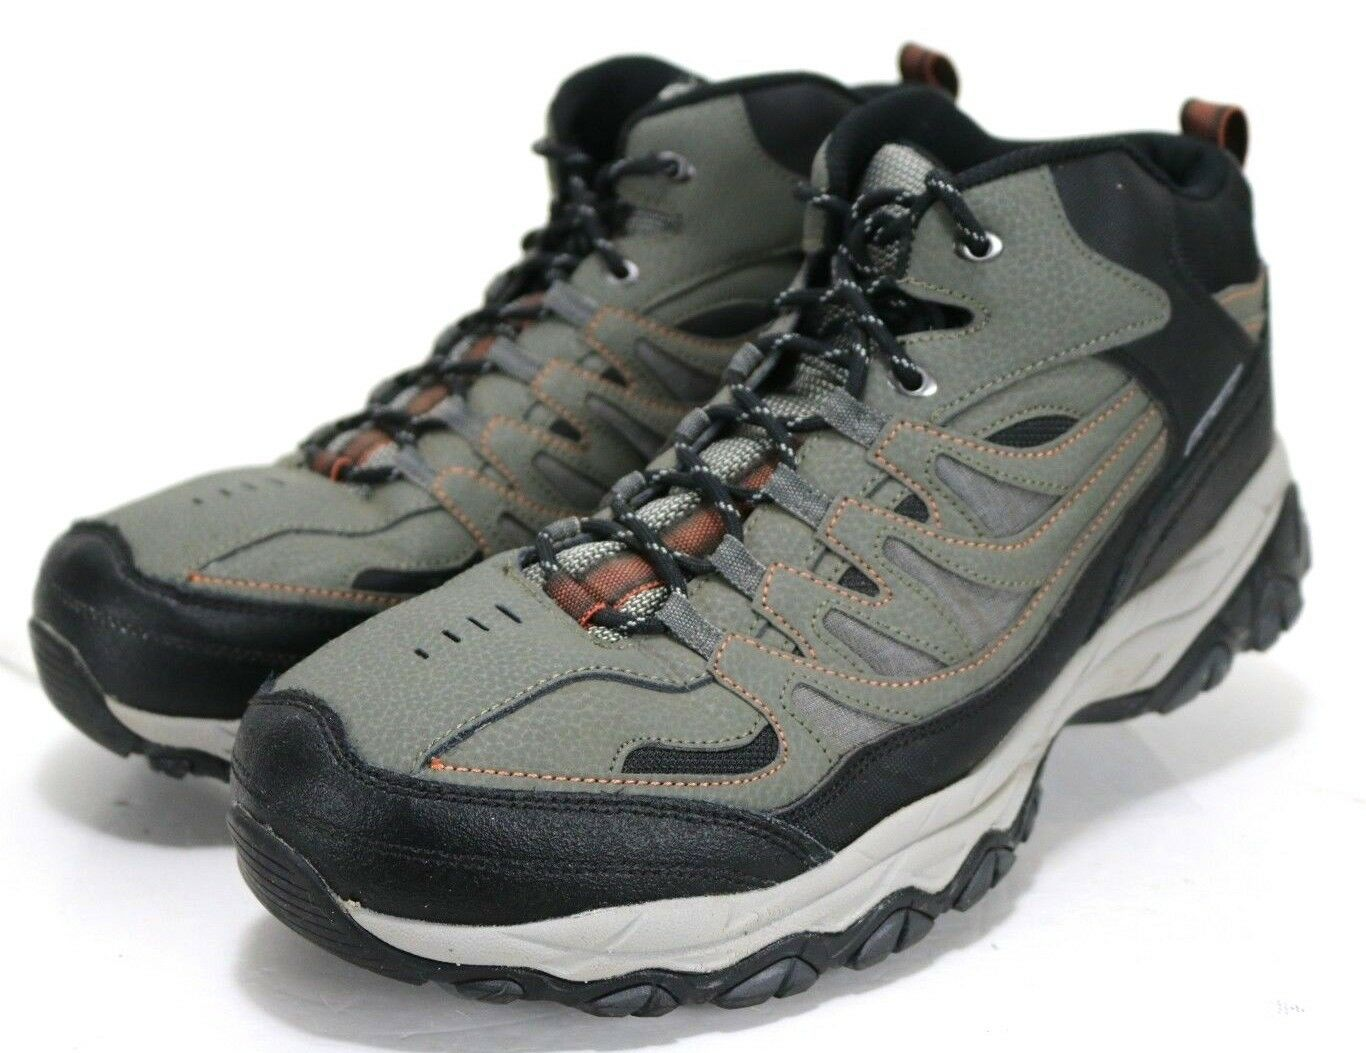 Skechers Afterburn Mid Top  90 Men's Hiking Boots Size 14 Olive Green Black